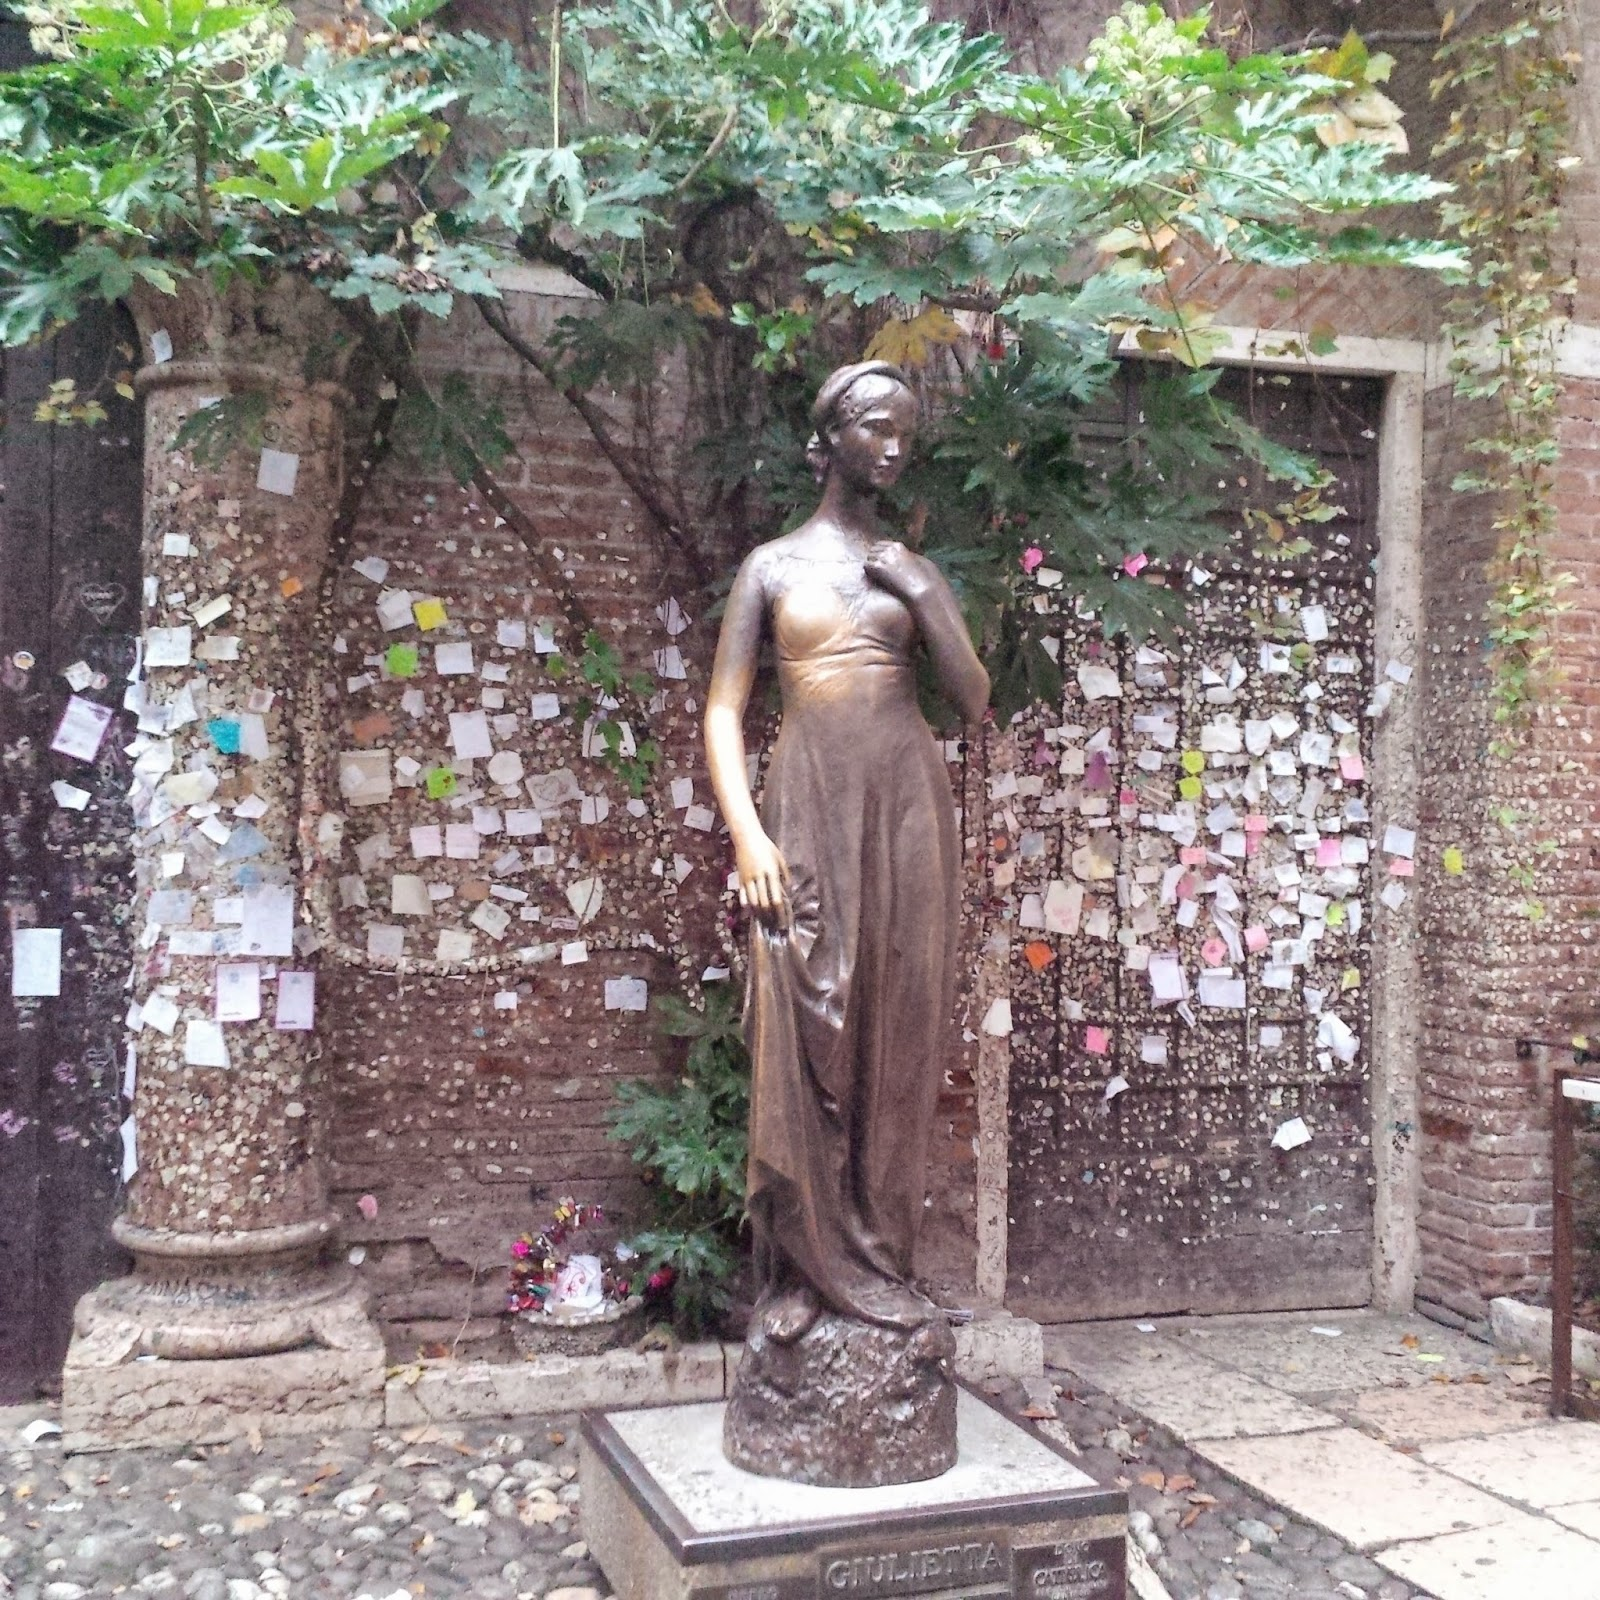 The statue of Juliet in Juliet's House in Verona, Veneto, Italy